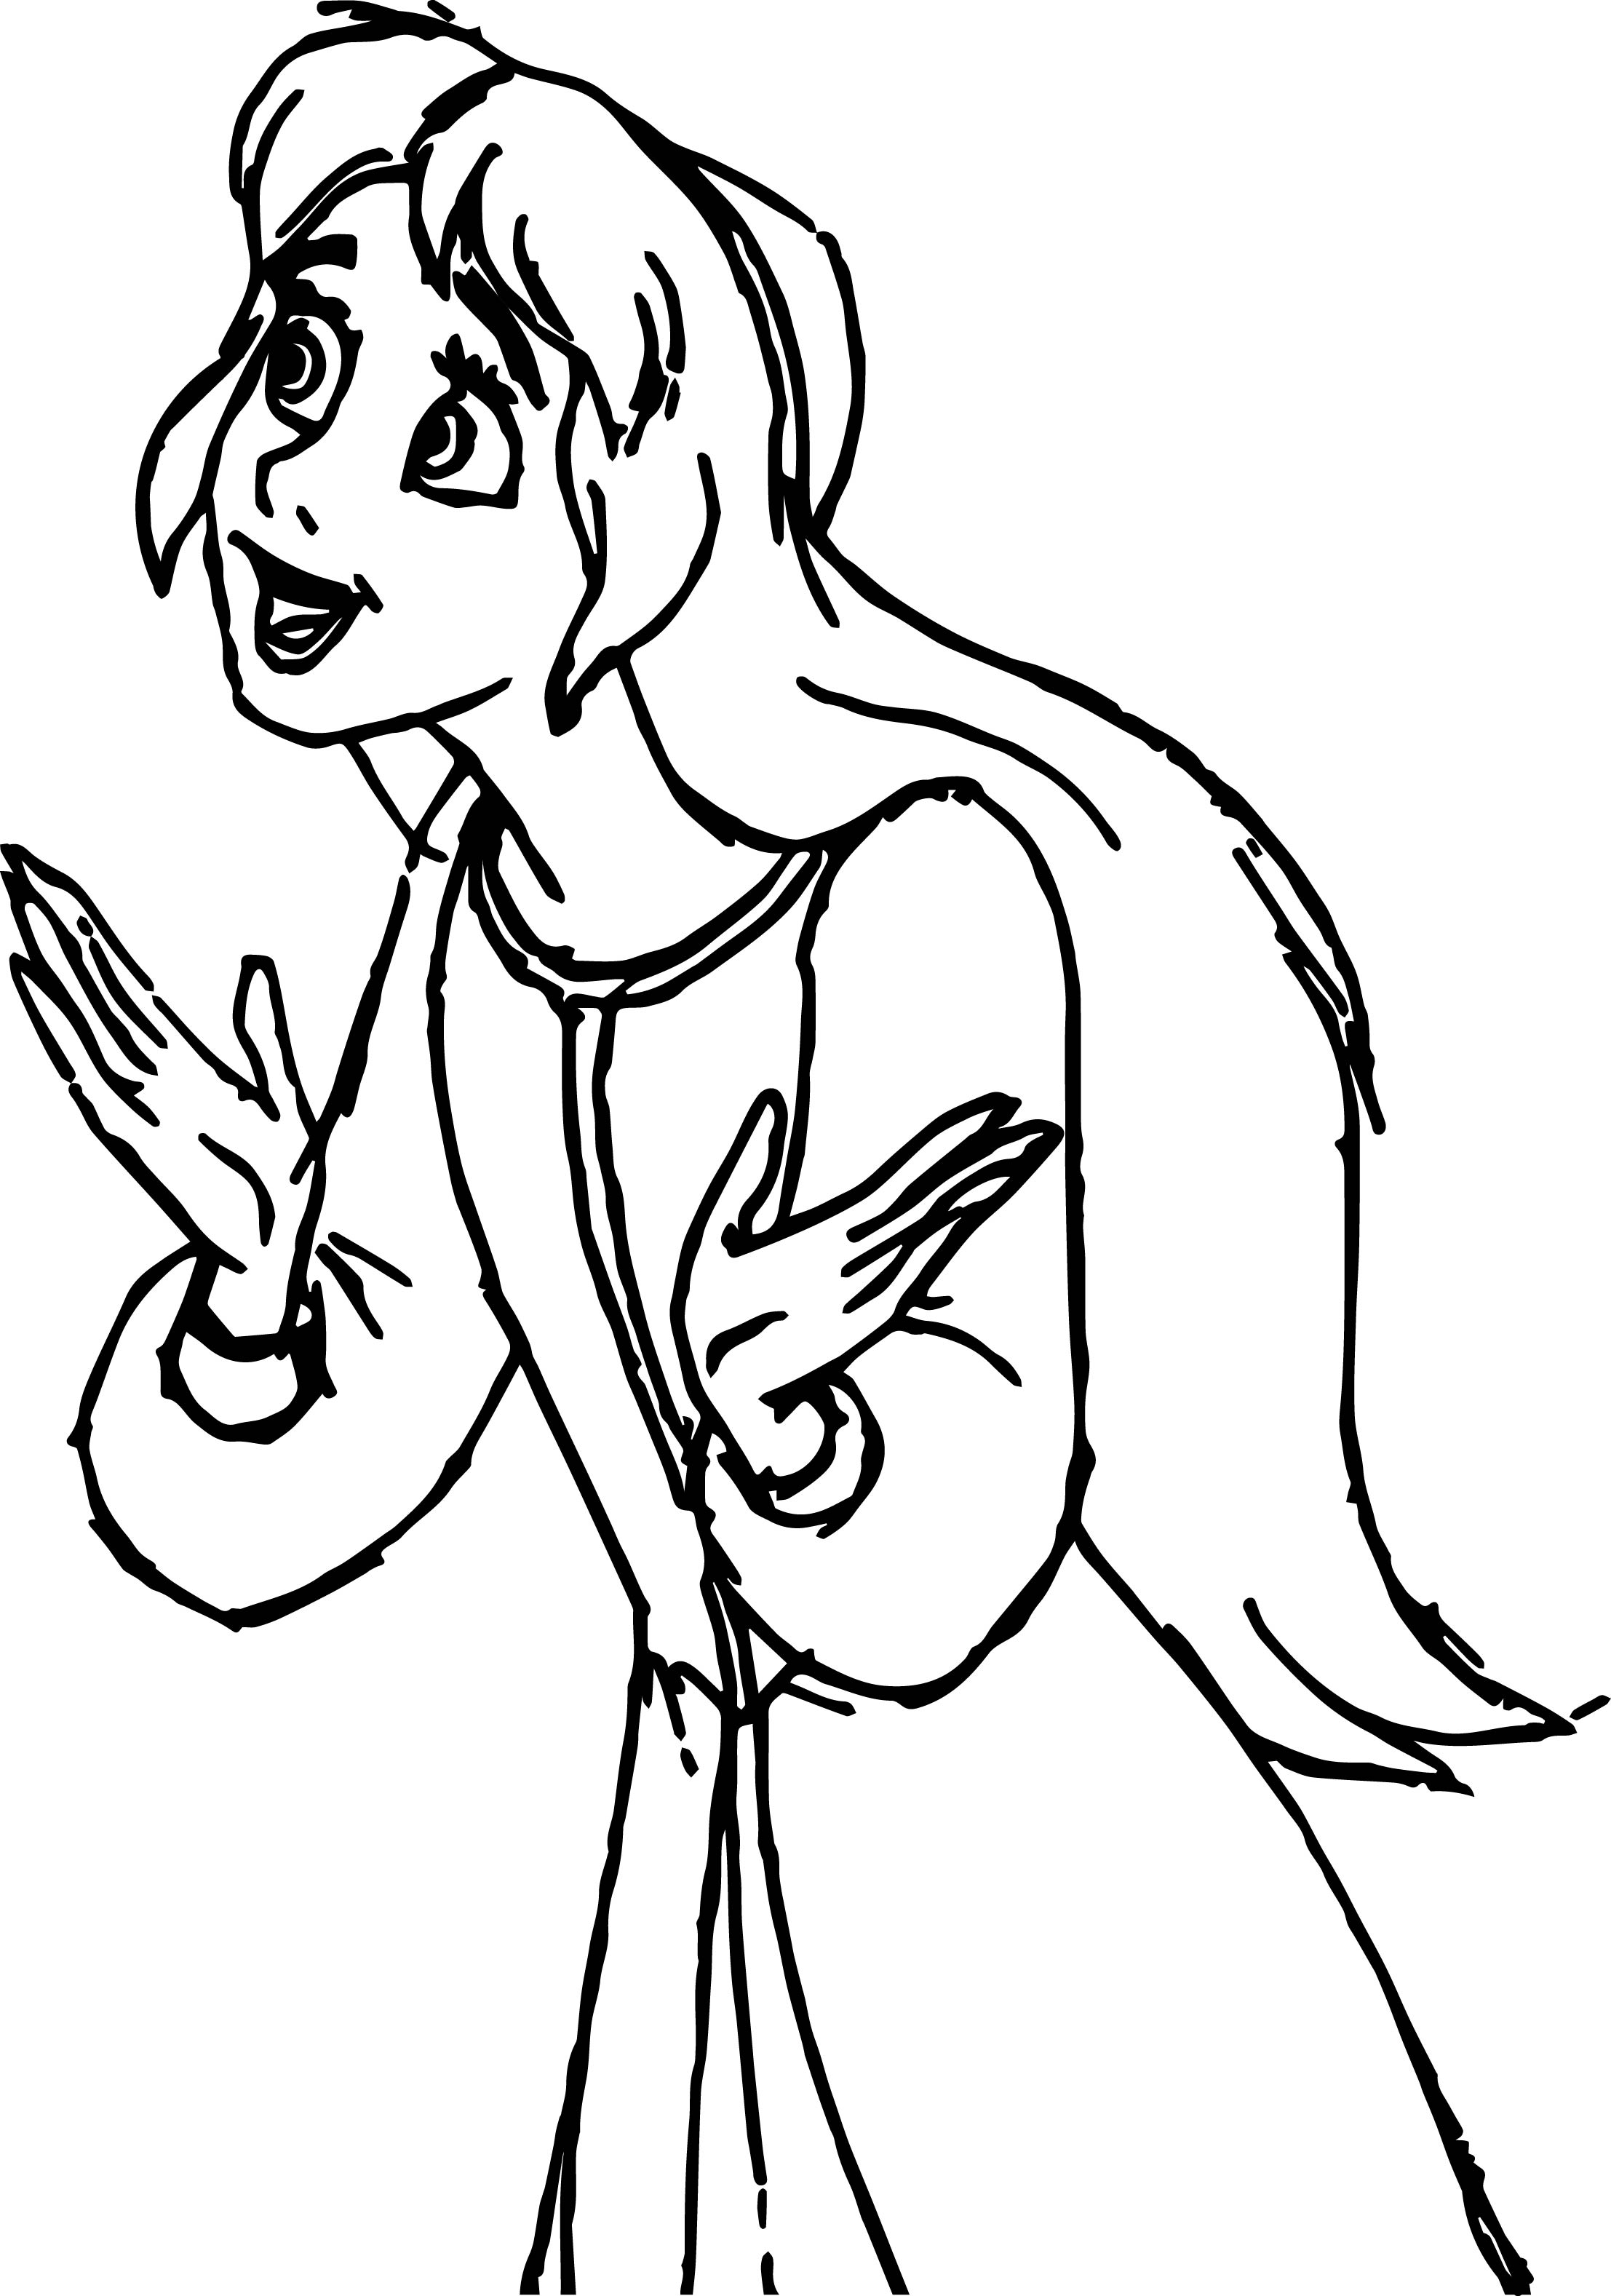 Black Cauldron Coloring Pages Sketch Coloring Page The Black Cauldron Coloring Pages